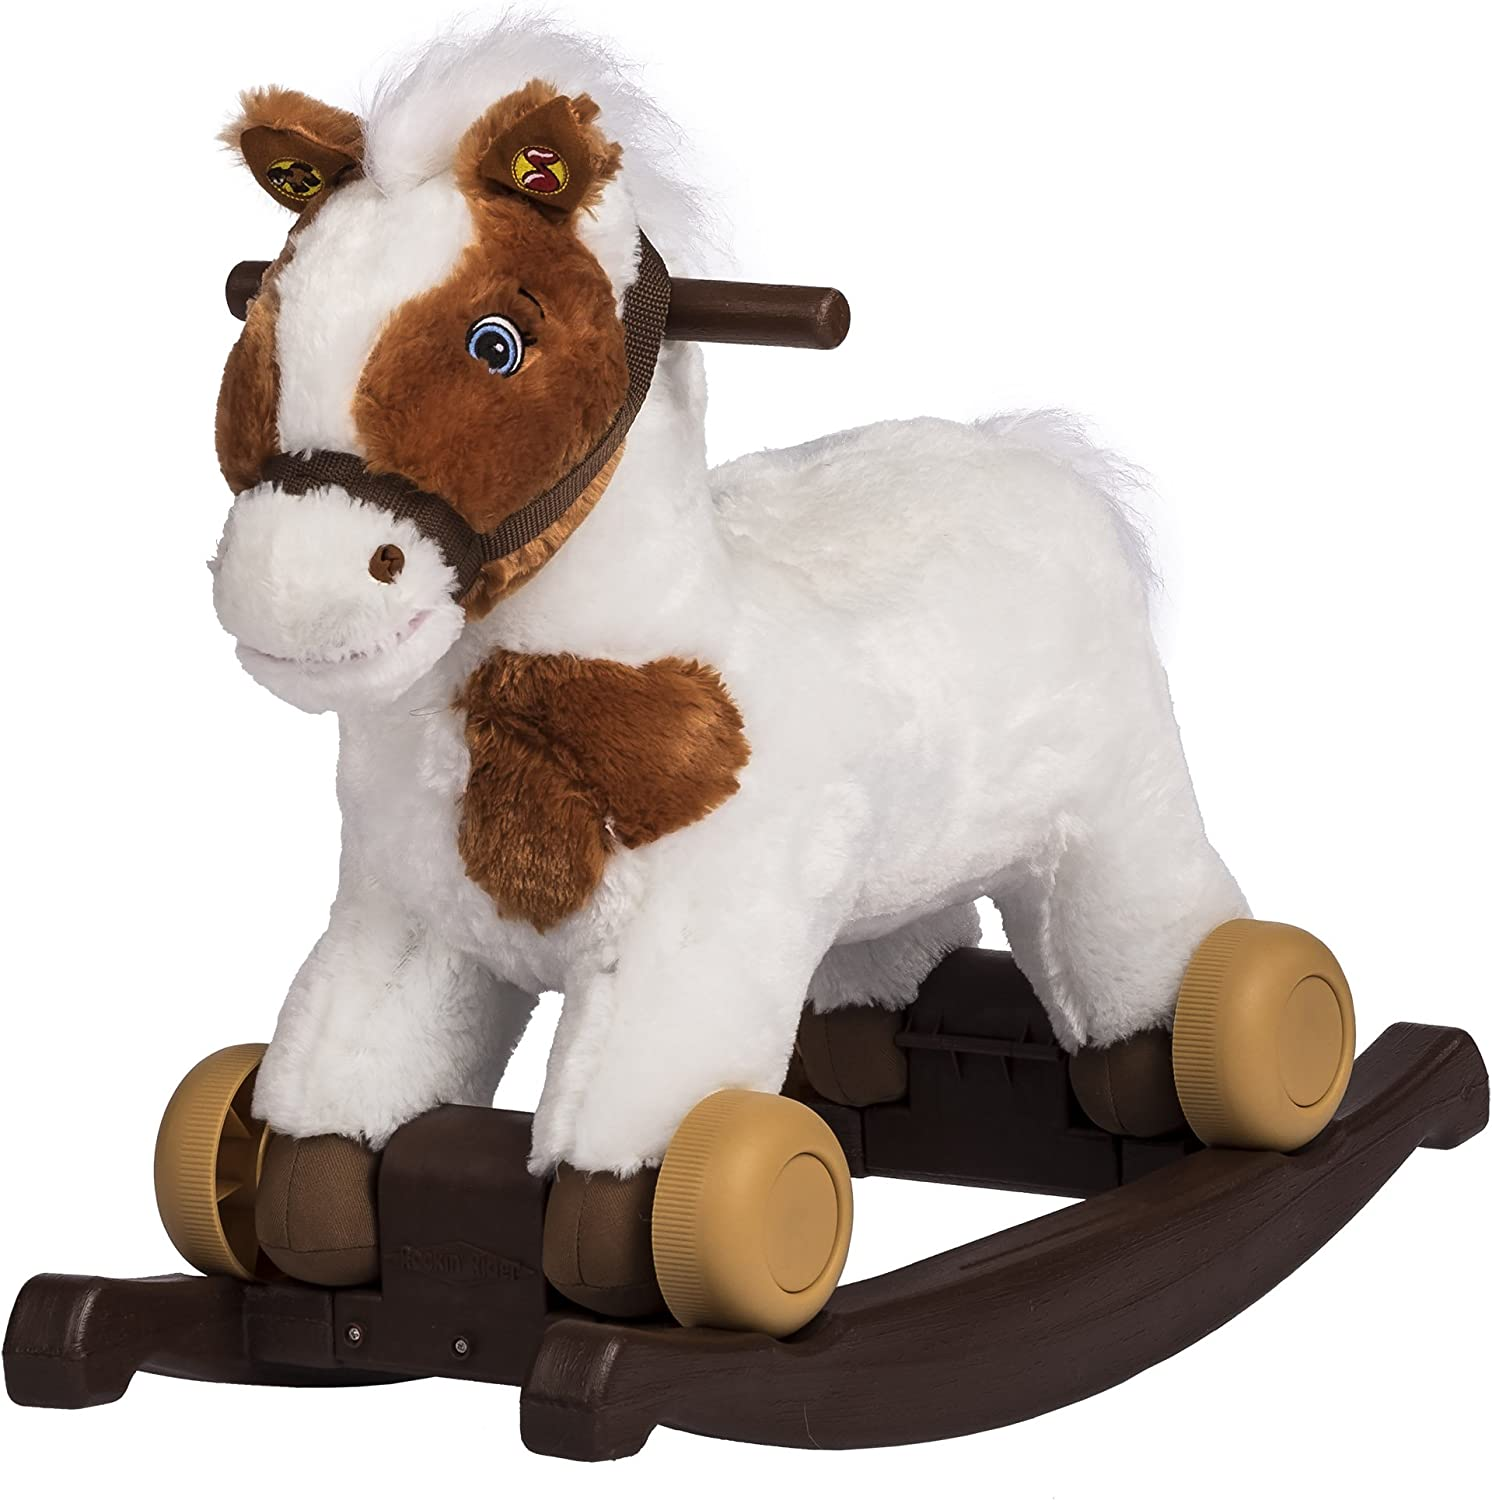 Rockin Rider Carrot 2-in-1 Pony Plush Ride-On, Painted